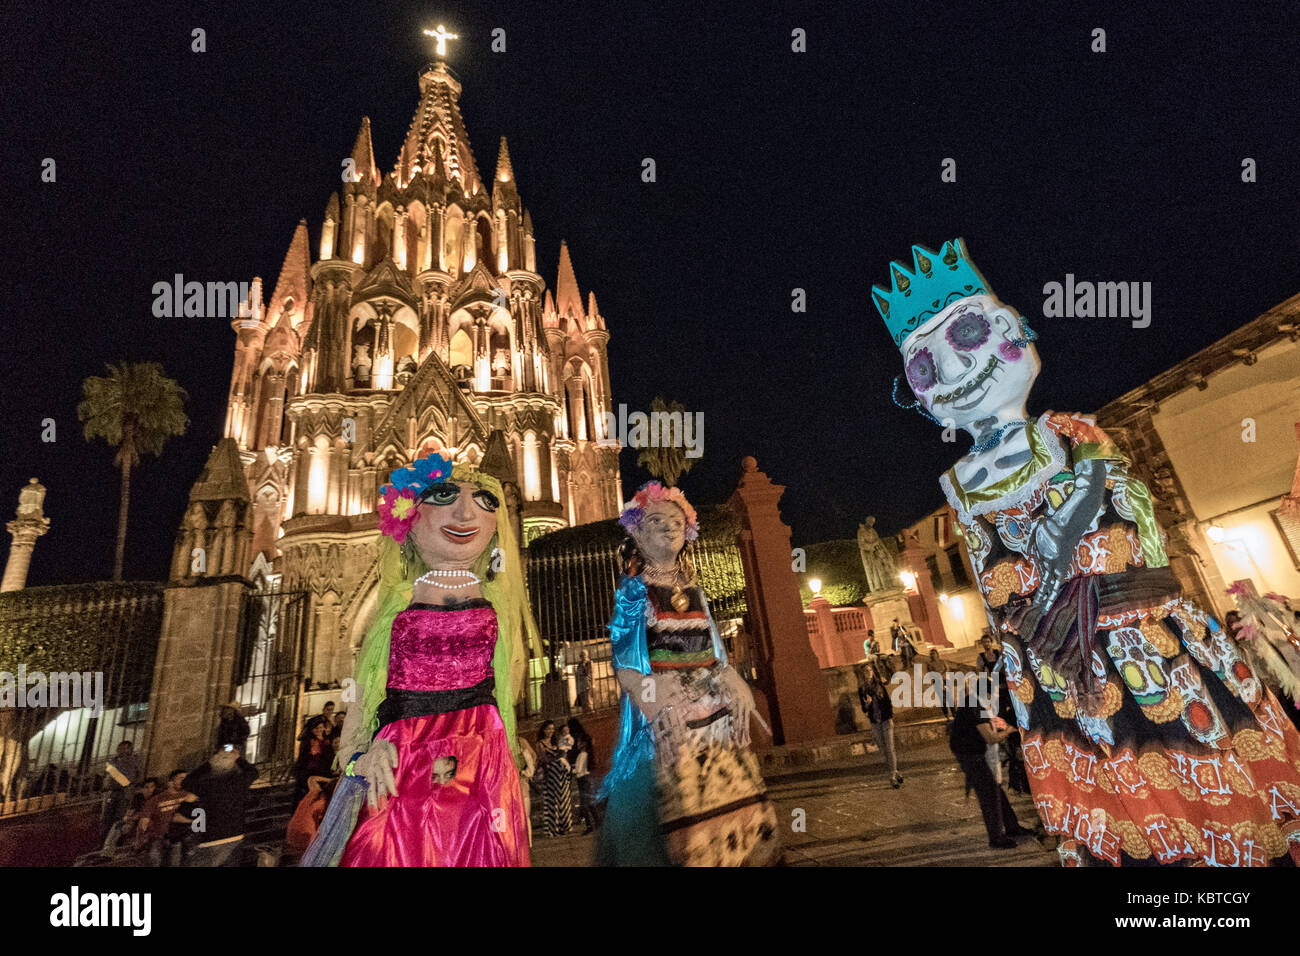 Giant paper-mache puppets called mojigangas dance past the Parroquia church during the week long fiesta of the patron - Stock Image